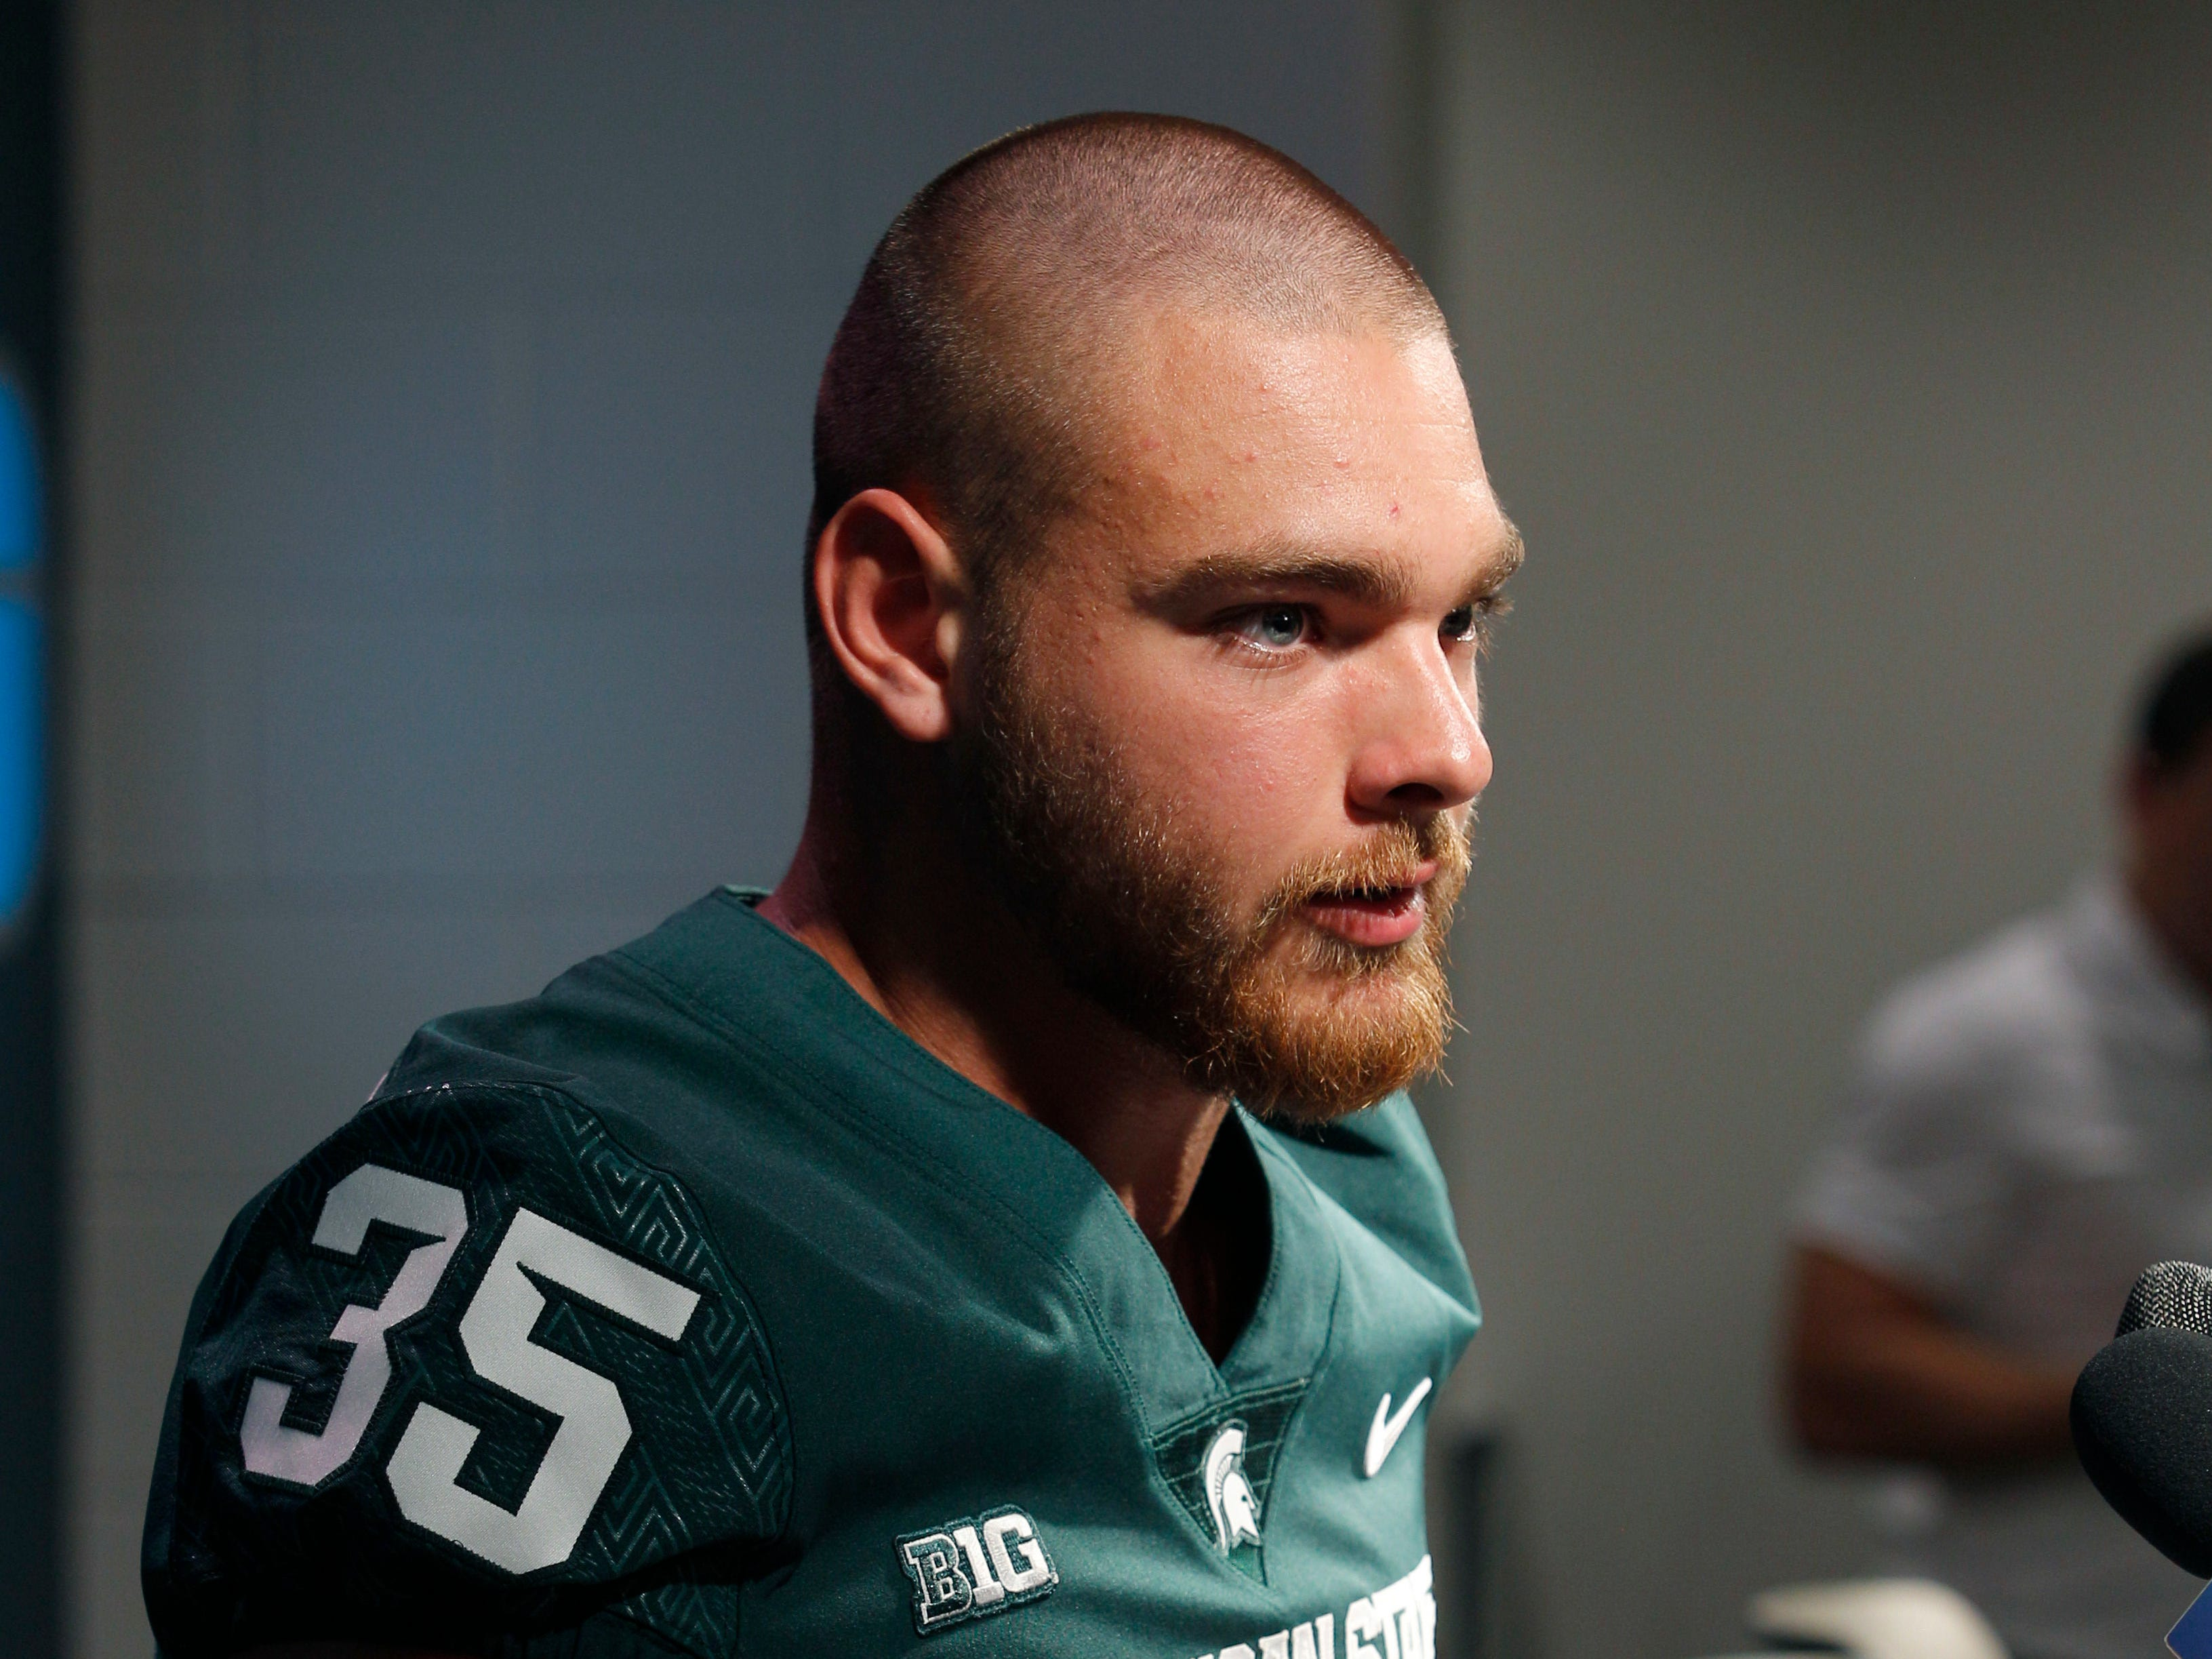 Michigan State linebacker Joe Bachie talks with reporters during the team's NCAA college football media day, Monday, Aug. 6, 2018, in East Lansing, Mich.